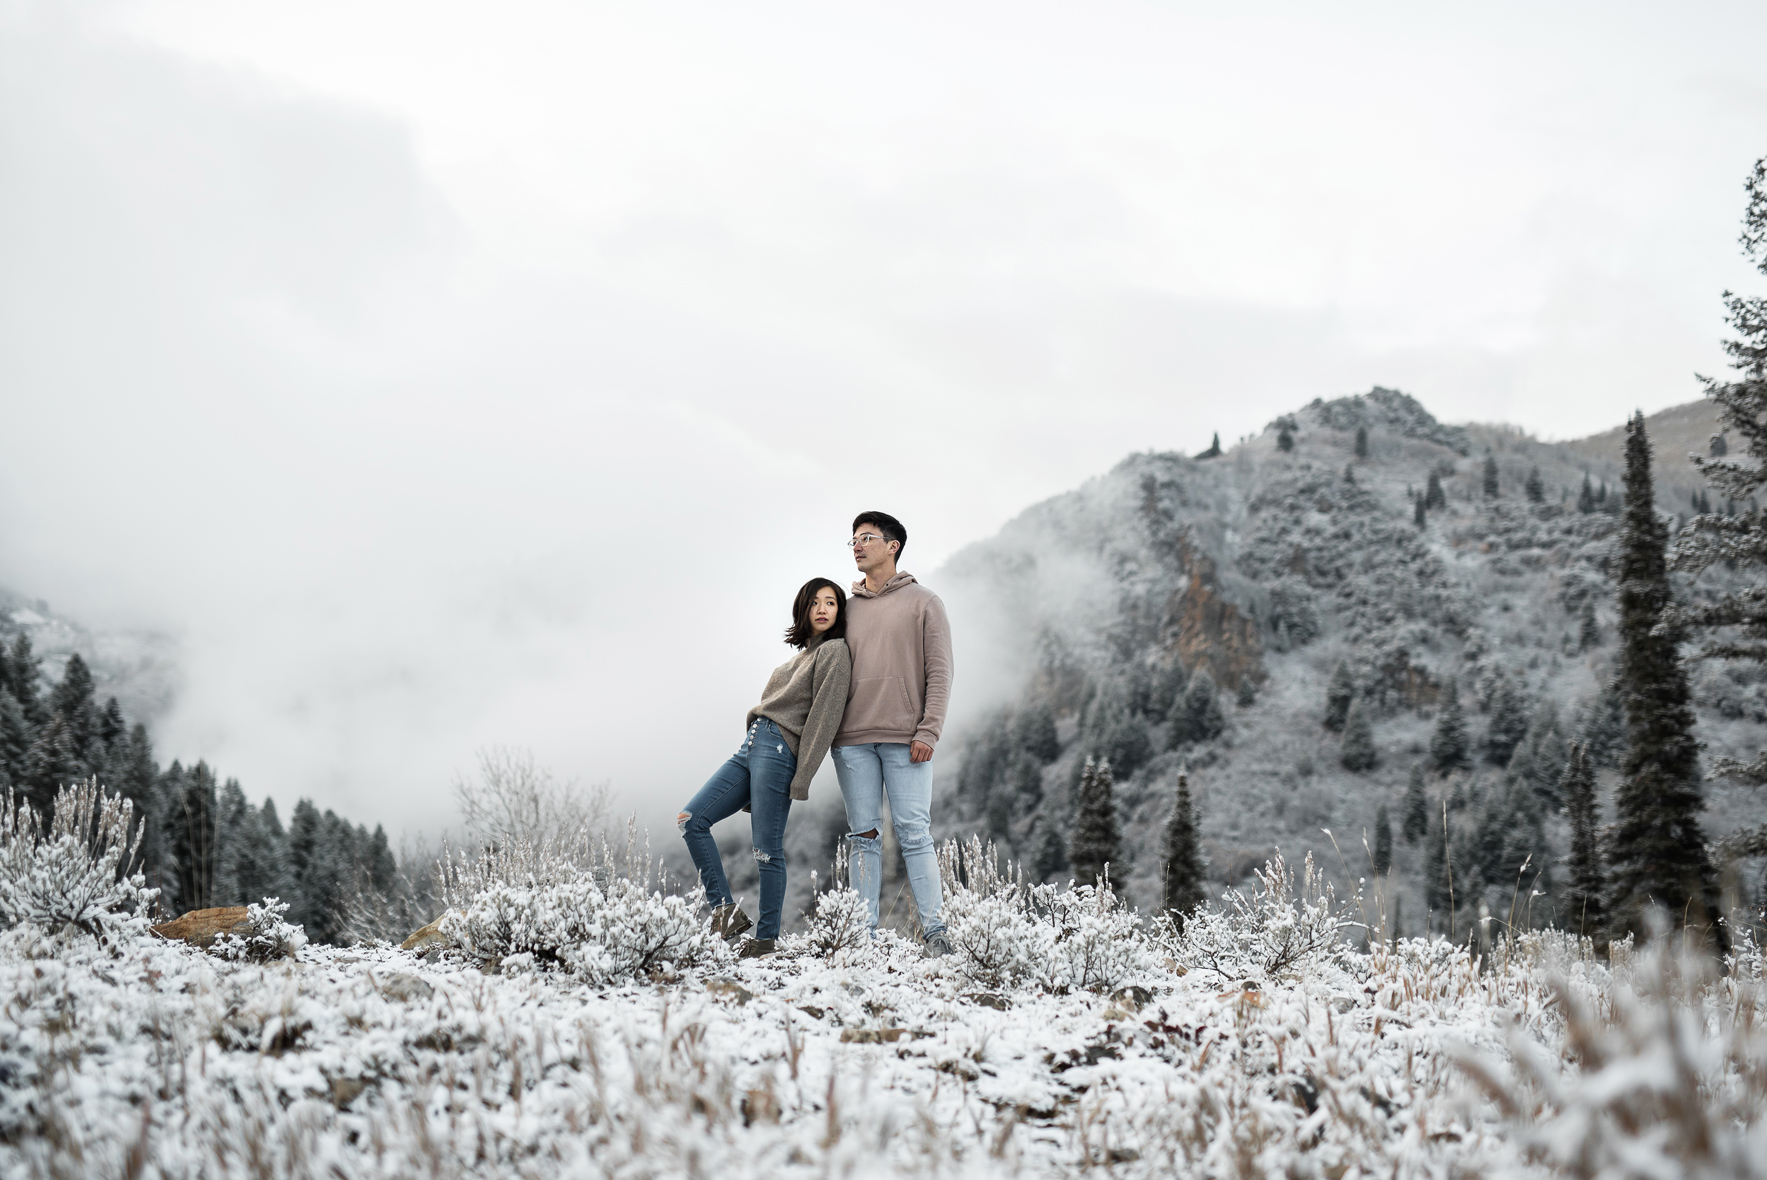 foggy mountainscape with a cute couple